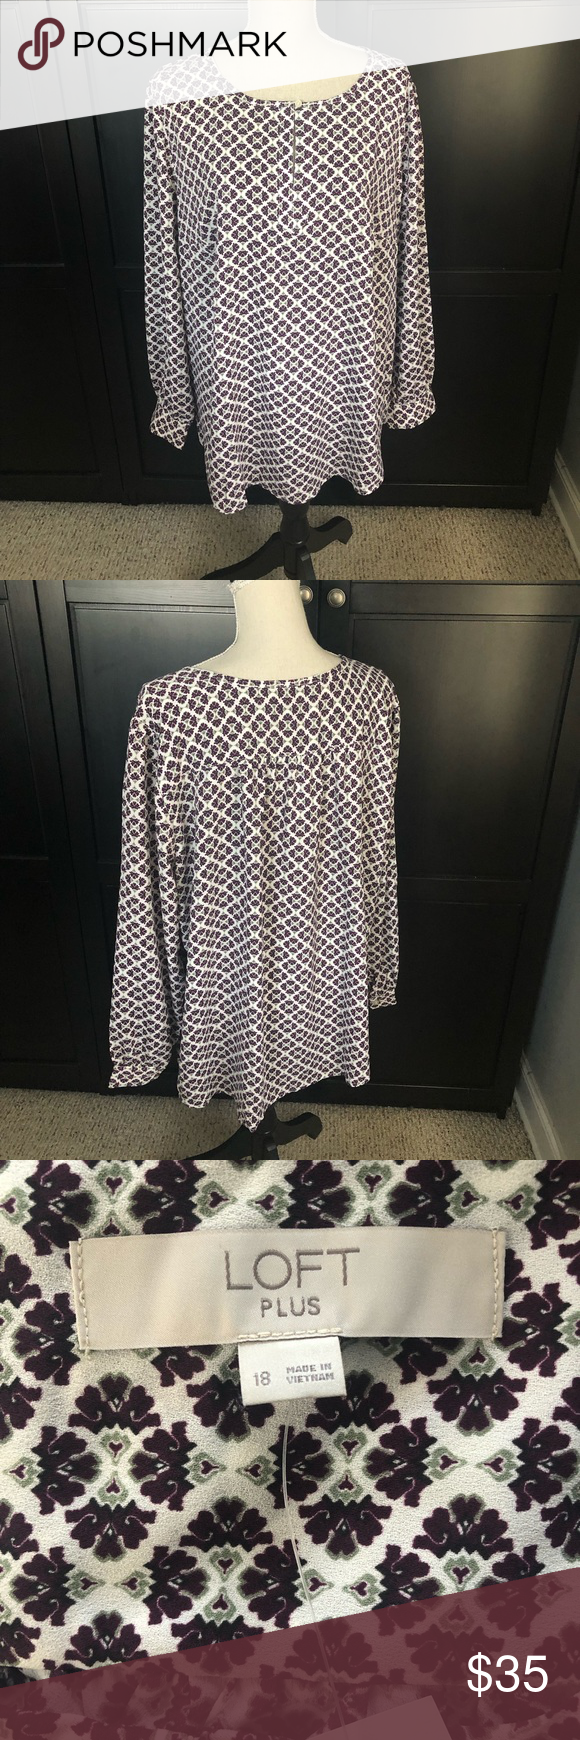 566c8c888c7 LOFT Wine Print Tunic Top NWT Beautiful top NWT LOFT Tops Tunics ...